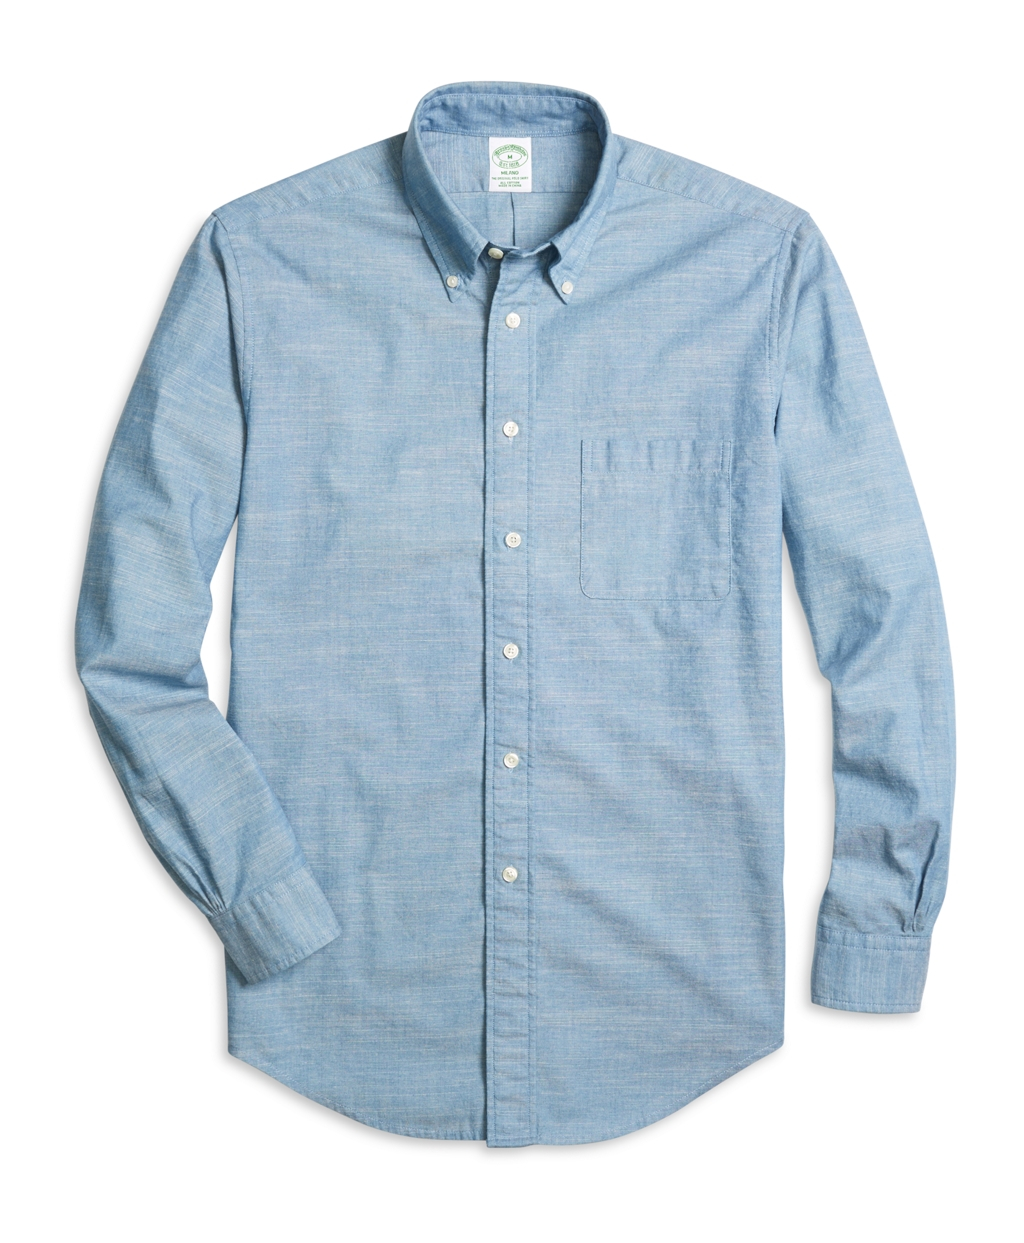 Lyst brooks brothers milano fit chambray sport shirt in for Brooks brothers sports shirts